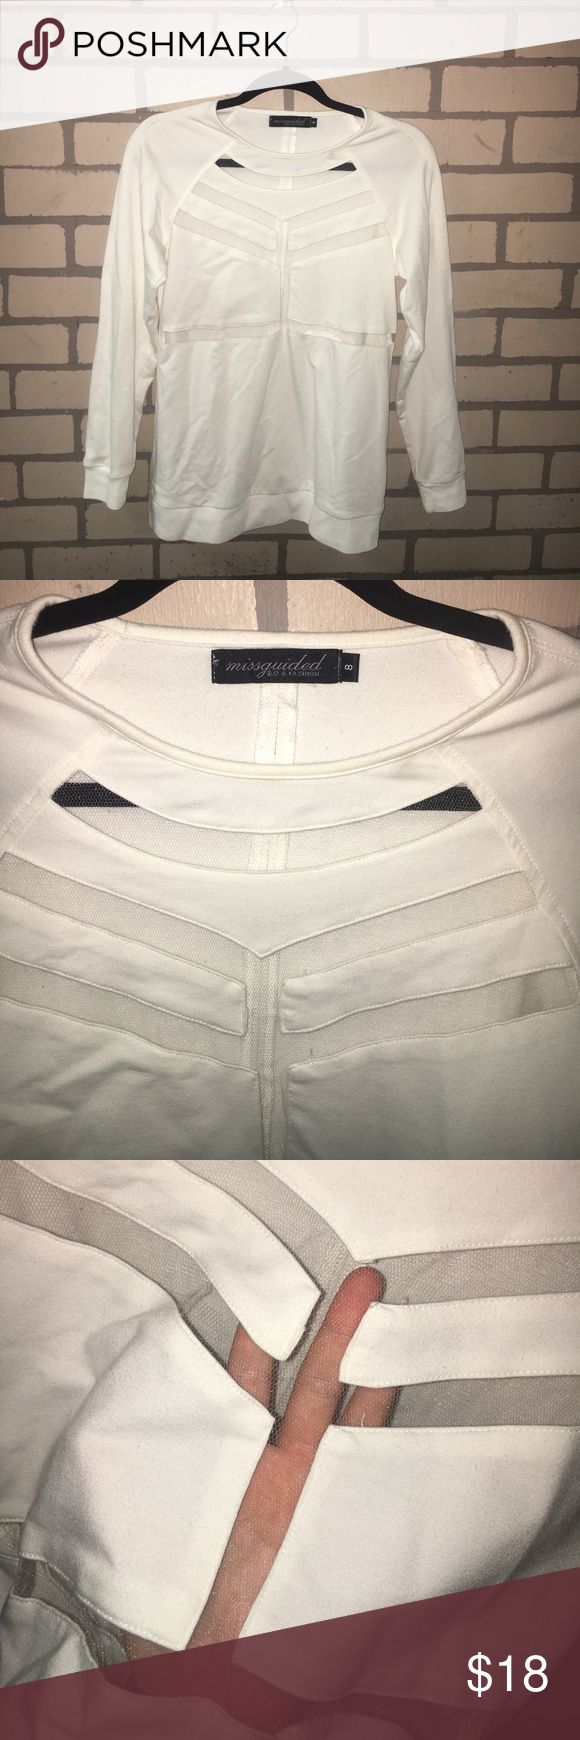 White Missguided top with mesh cut outs All white with see through mesh cut outs! Made of 100% polyester. In great condition!! Willing to accept offers!❤ Missguided Tops Tees - Long Sleeve